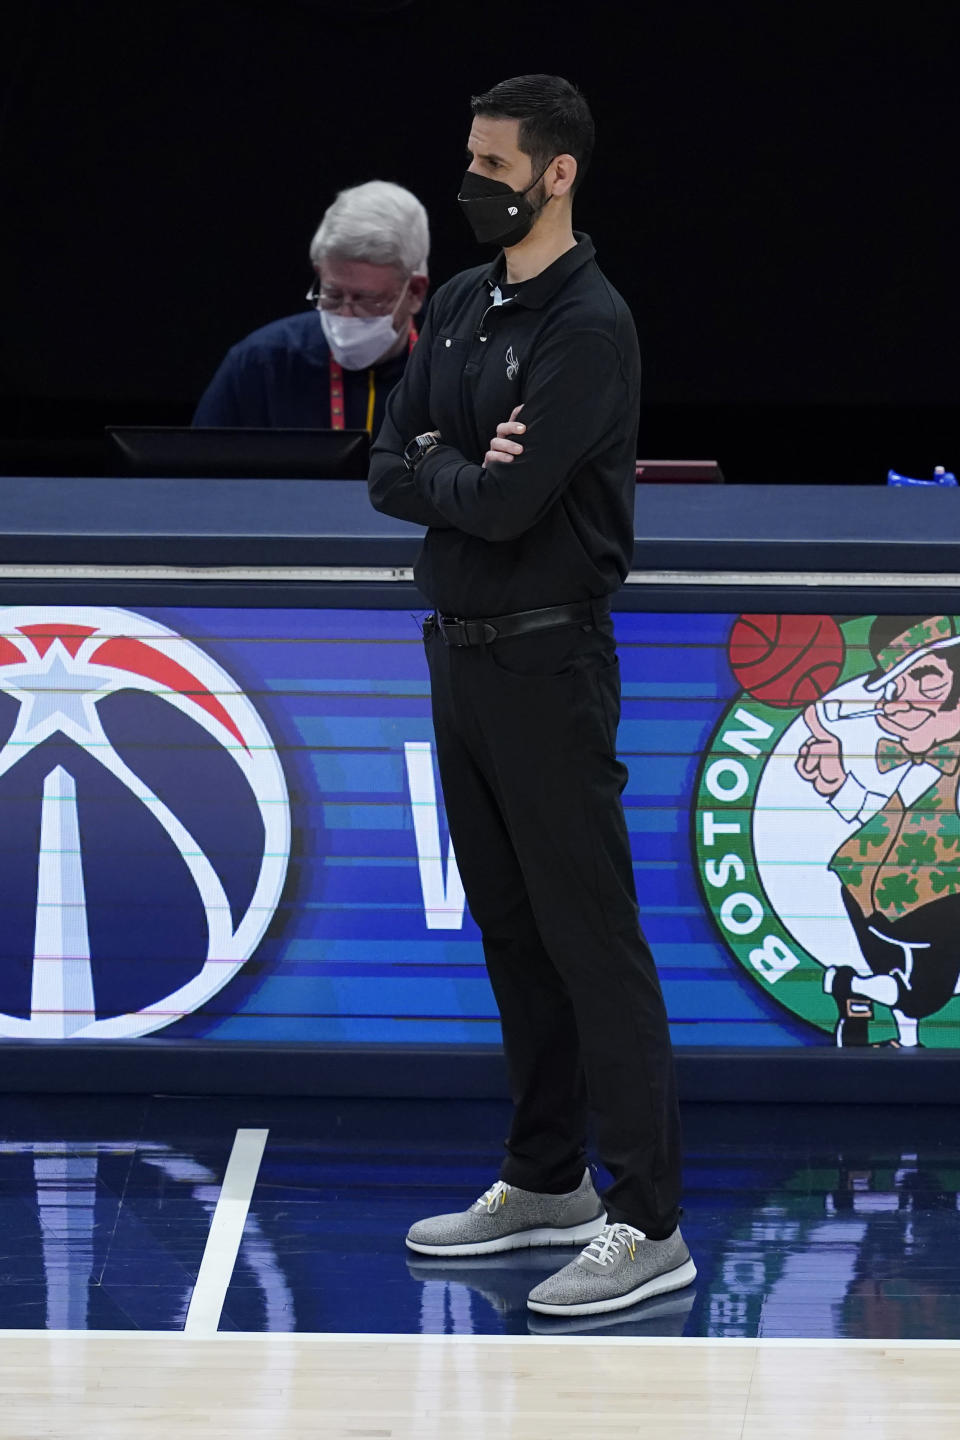 Charlotte Hornets coach James Borrego watches during the second half of the team's NBA basketball Eastern Conference play-in game against the Indiana Pacers, Tuesday, May 18, 2021, in Indianapolis. Indiana won 144-117. (AP Photo/Darron Cummings)